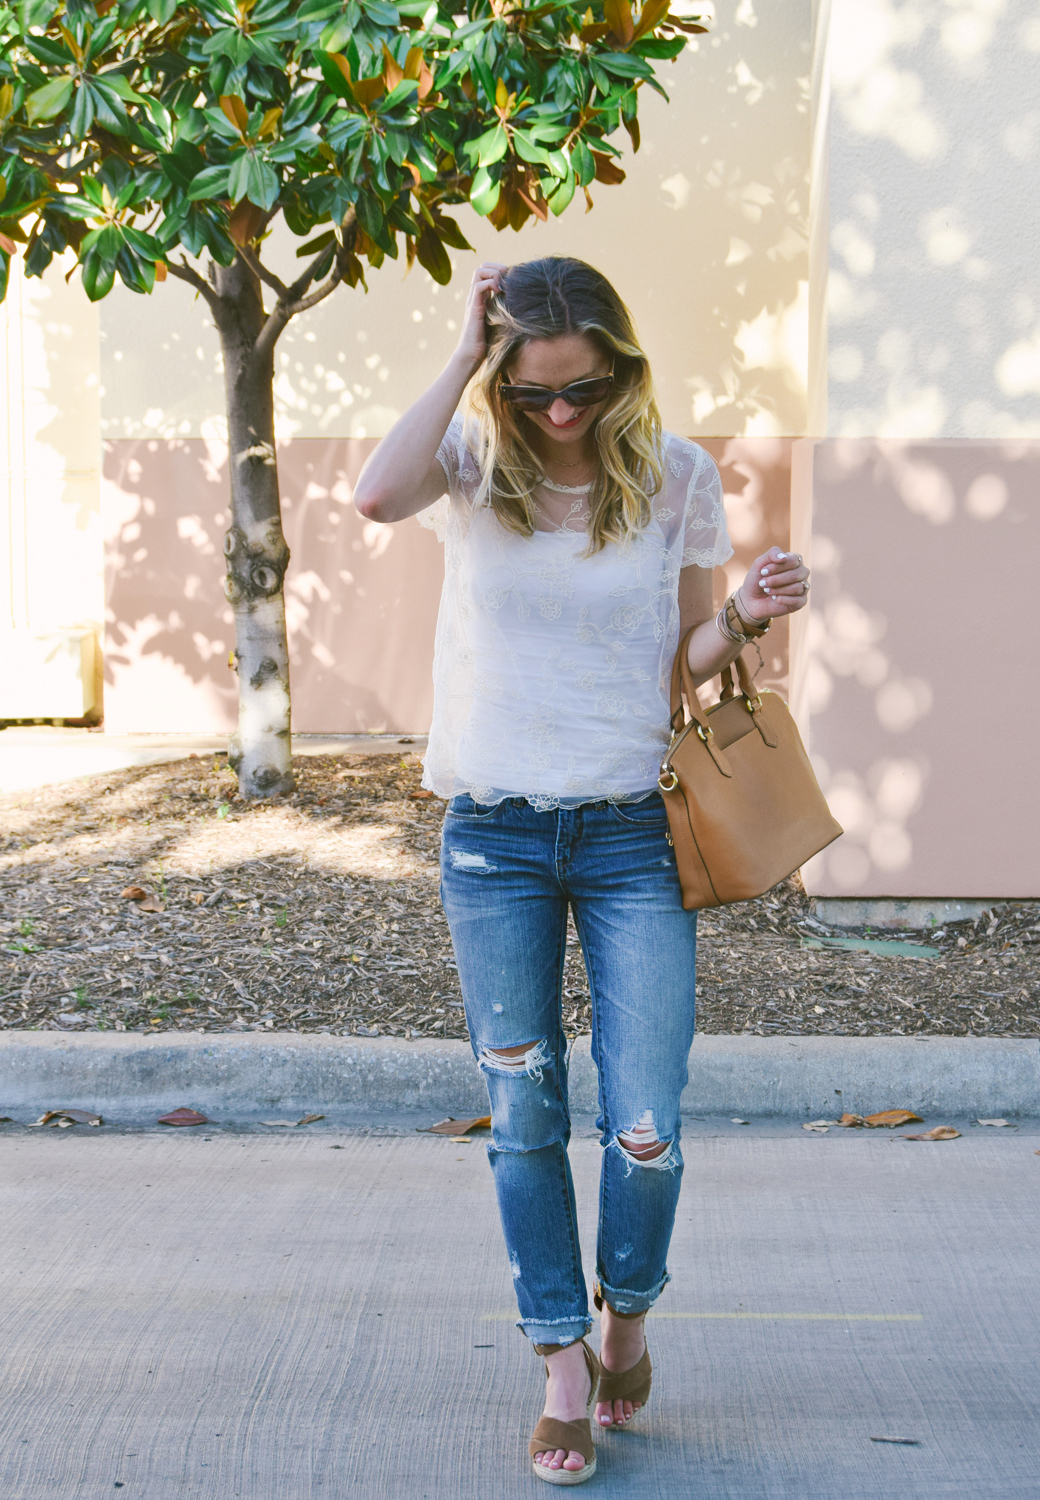 livvyland-blog-olivia-watson-austin-texas-fashion-blogger-hinge-mesh-lace-embroidered-top-sheer-distressed-boyfriend-jeans-brahmin-duxbury-southcoast-collection-7